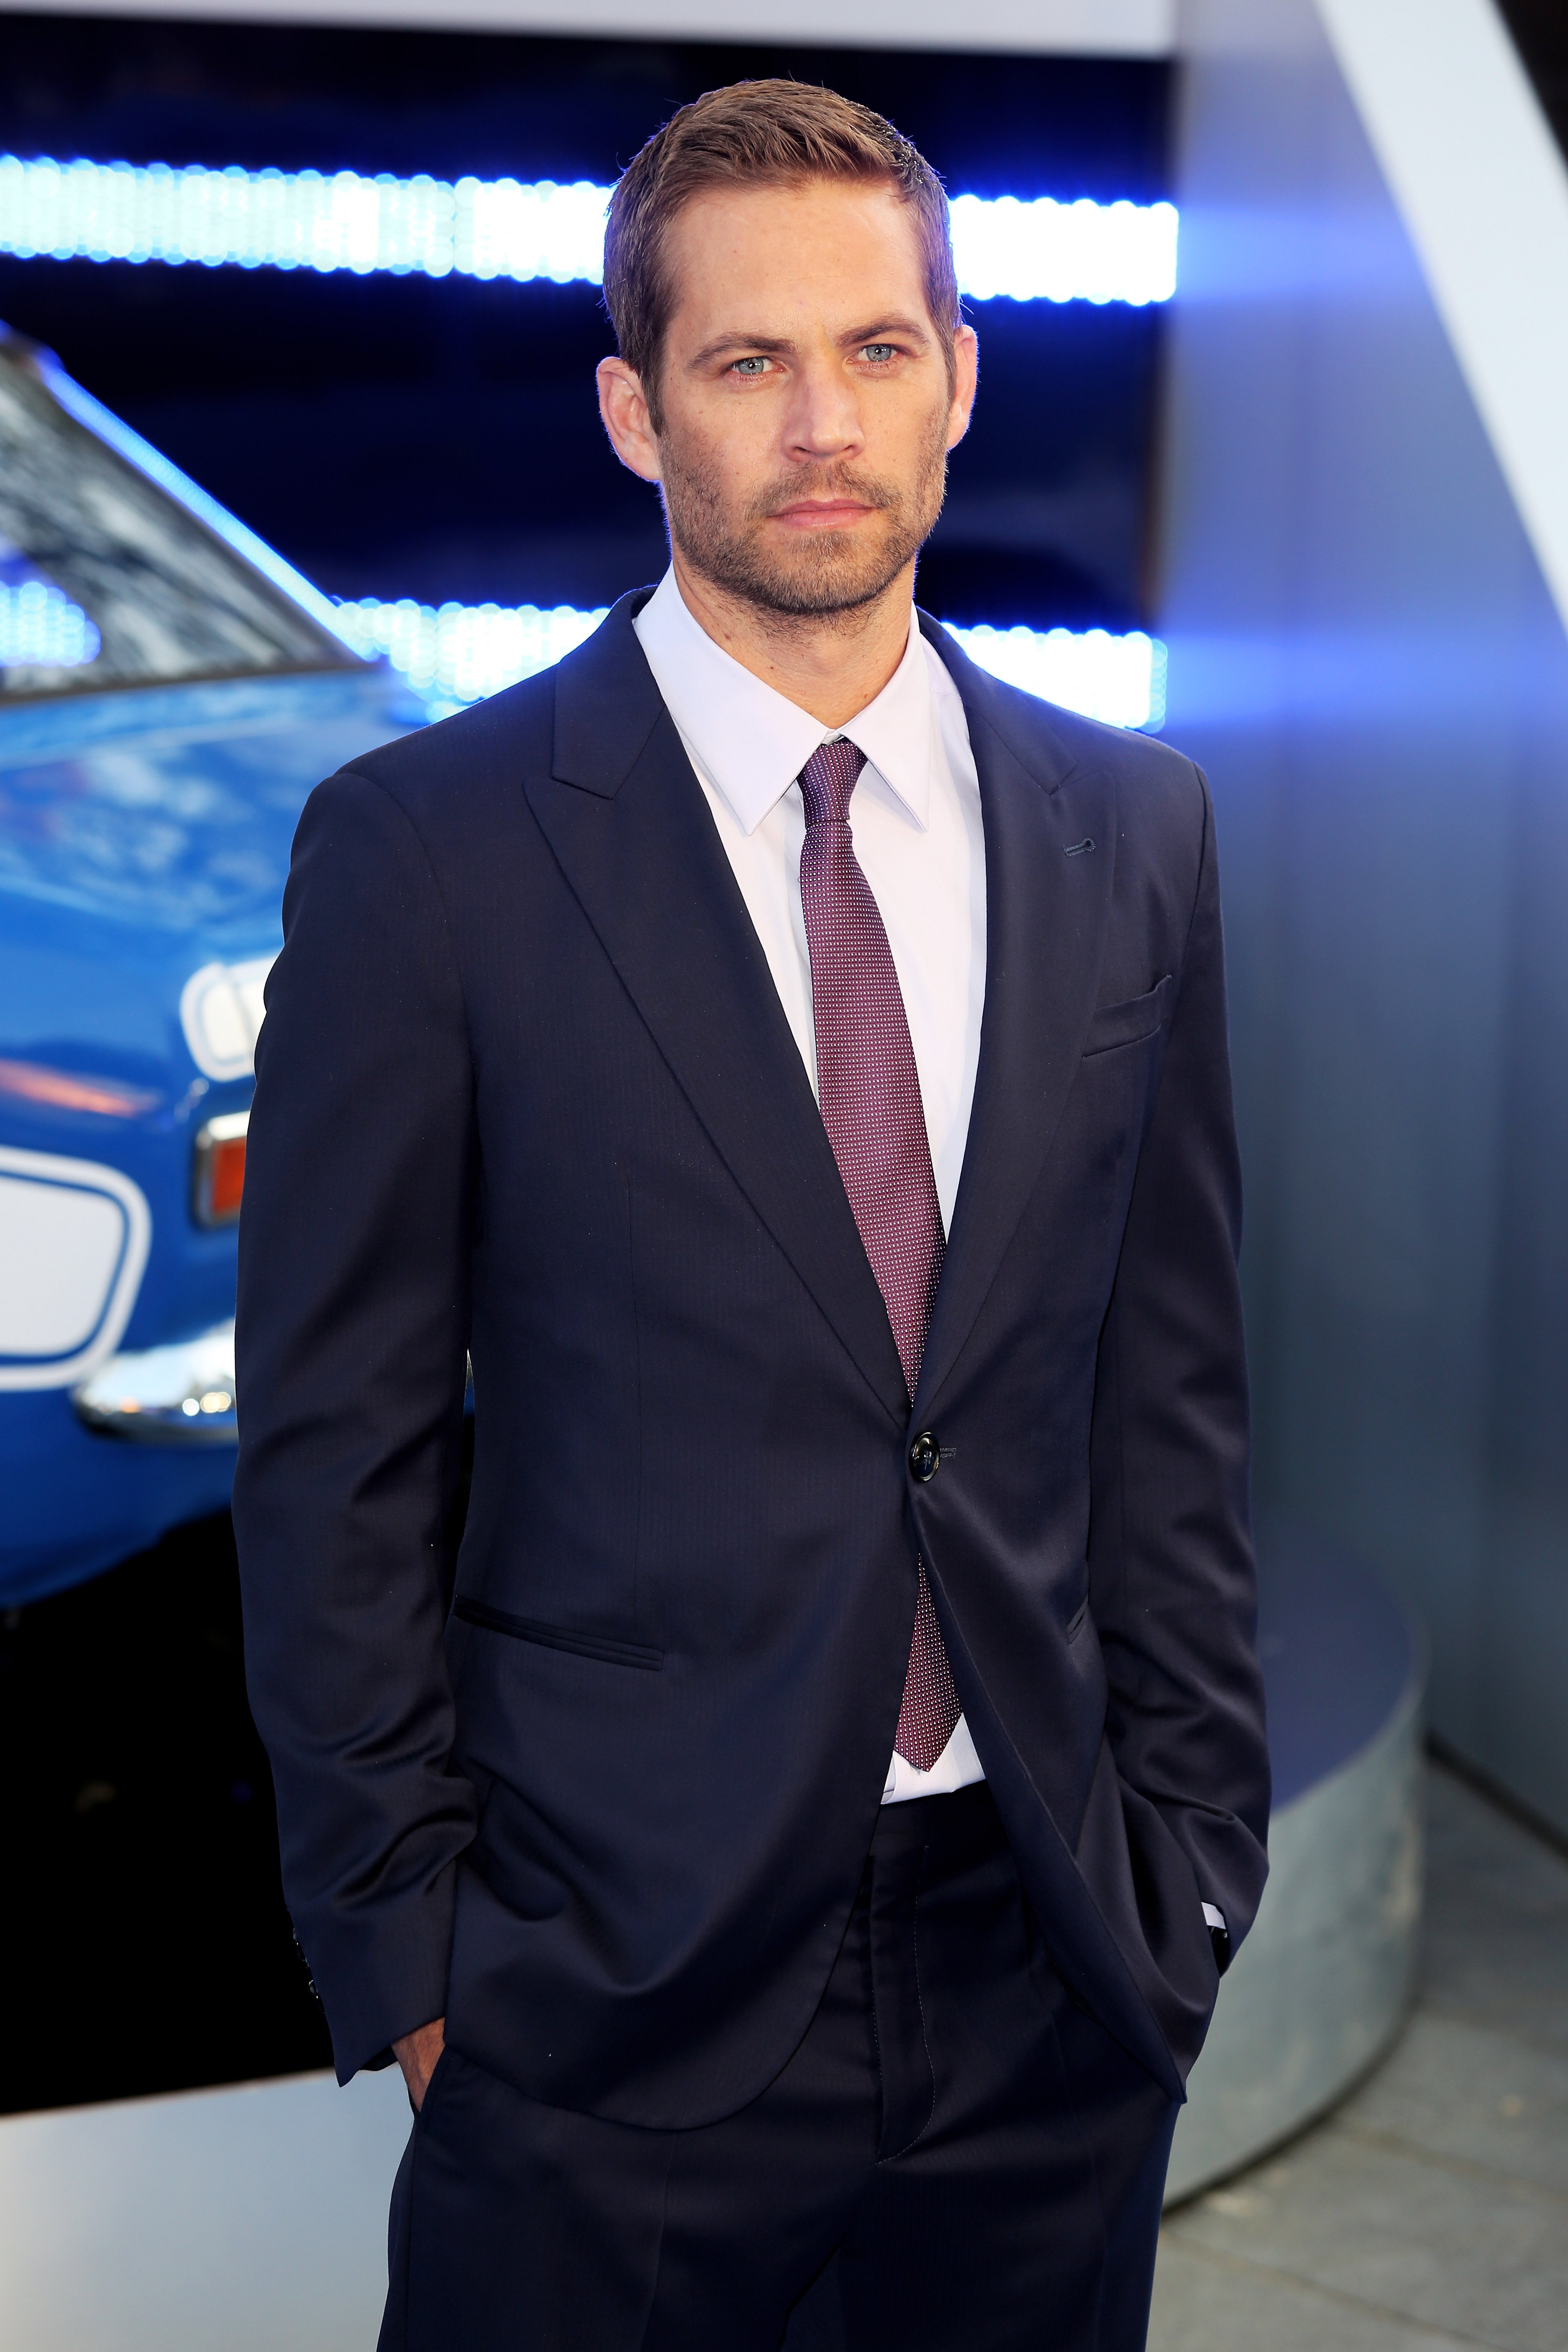 Paul Walker attends the World Premiere of 'Fast & Furious 6' at Empire Leicester Square on May 7, 2013, in London, England. | Source: Getty Images.